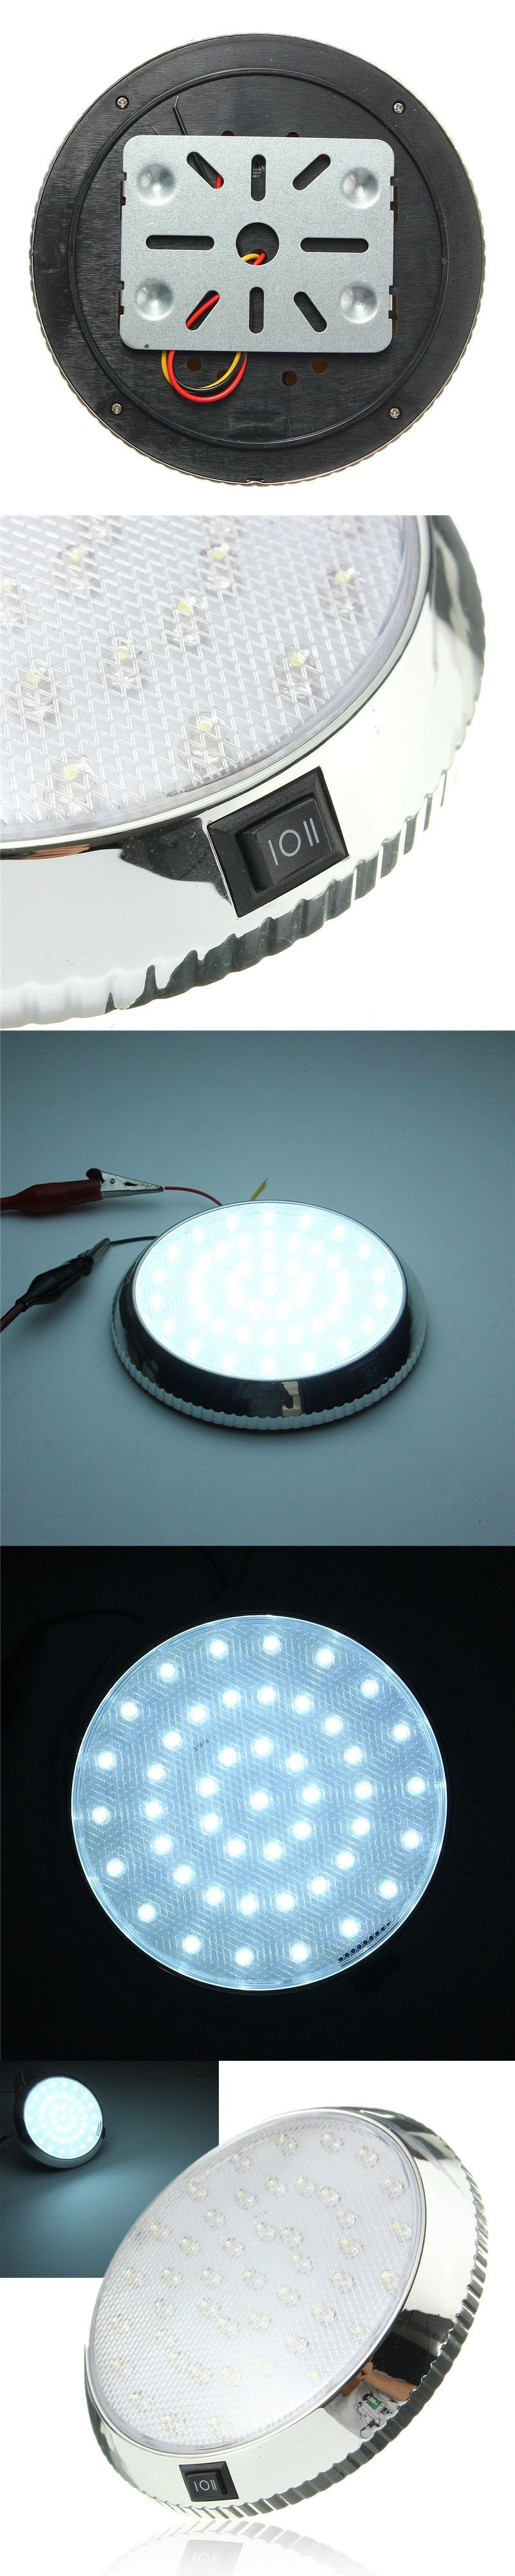 1pc 025a 46 led car auto vehicle interior indoor roof ceiling dome 1pc 025a 46 led car auto vehicle interior indoor roof ceiling dome light white lamp arubaitofo Gallery